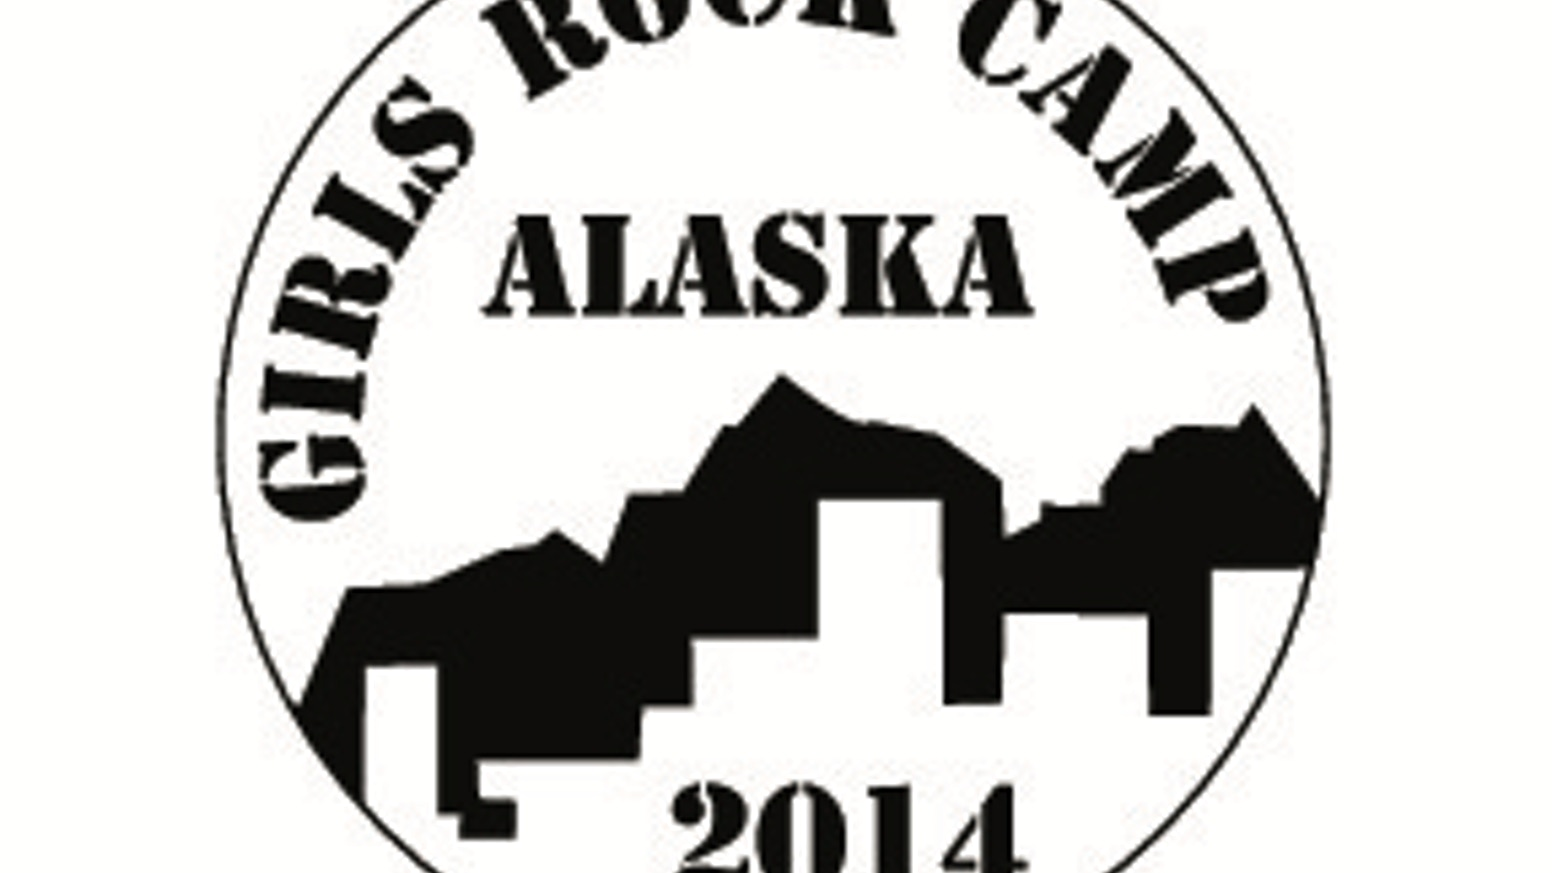 Girls Rock Camp Alaska 2014 by Monica lettner — Kickstarter